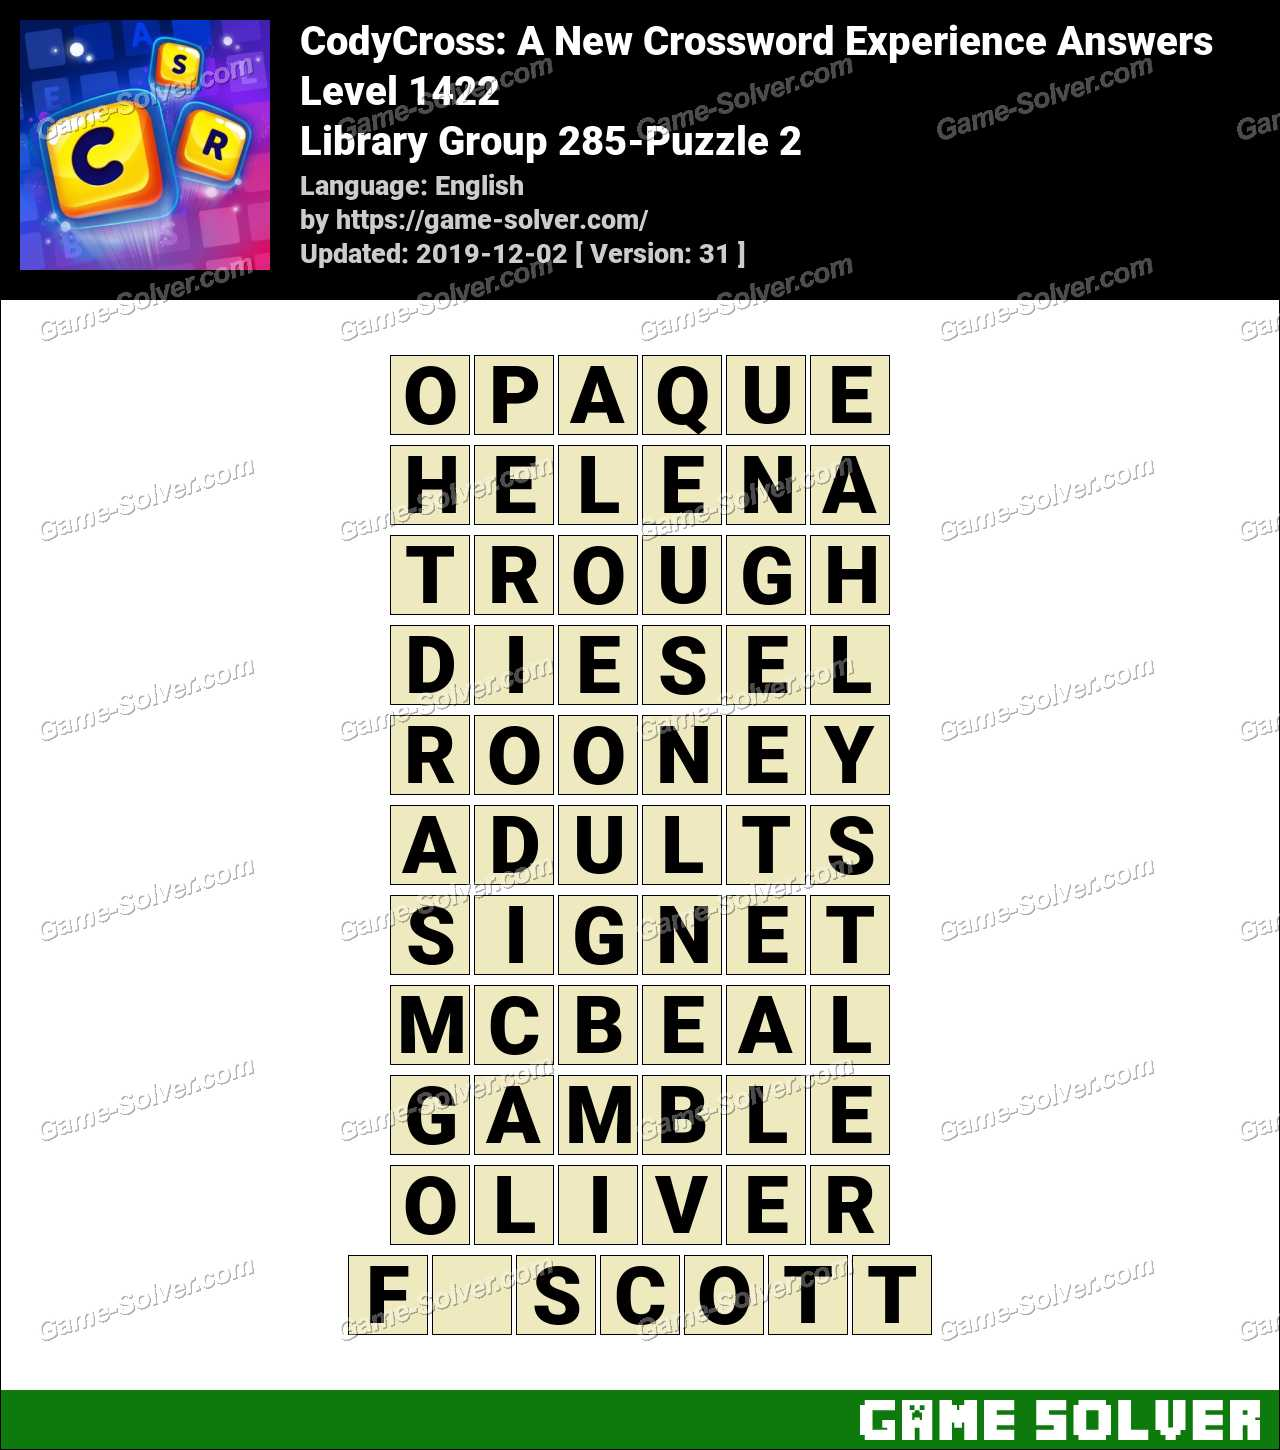 CodyCross Library Group 285-Puzzle 2 Answers